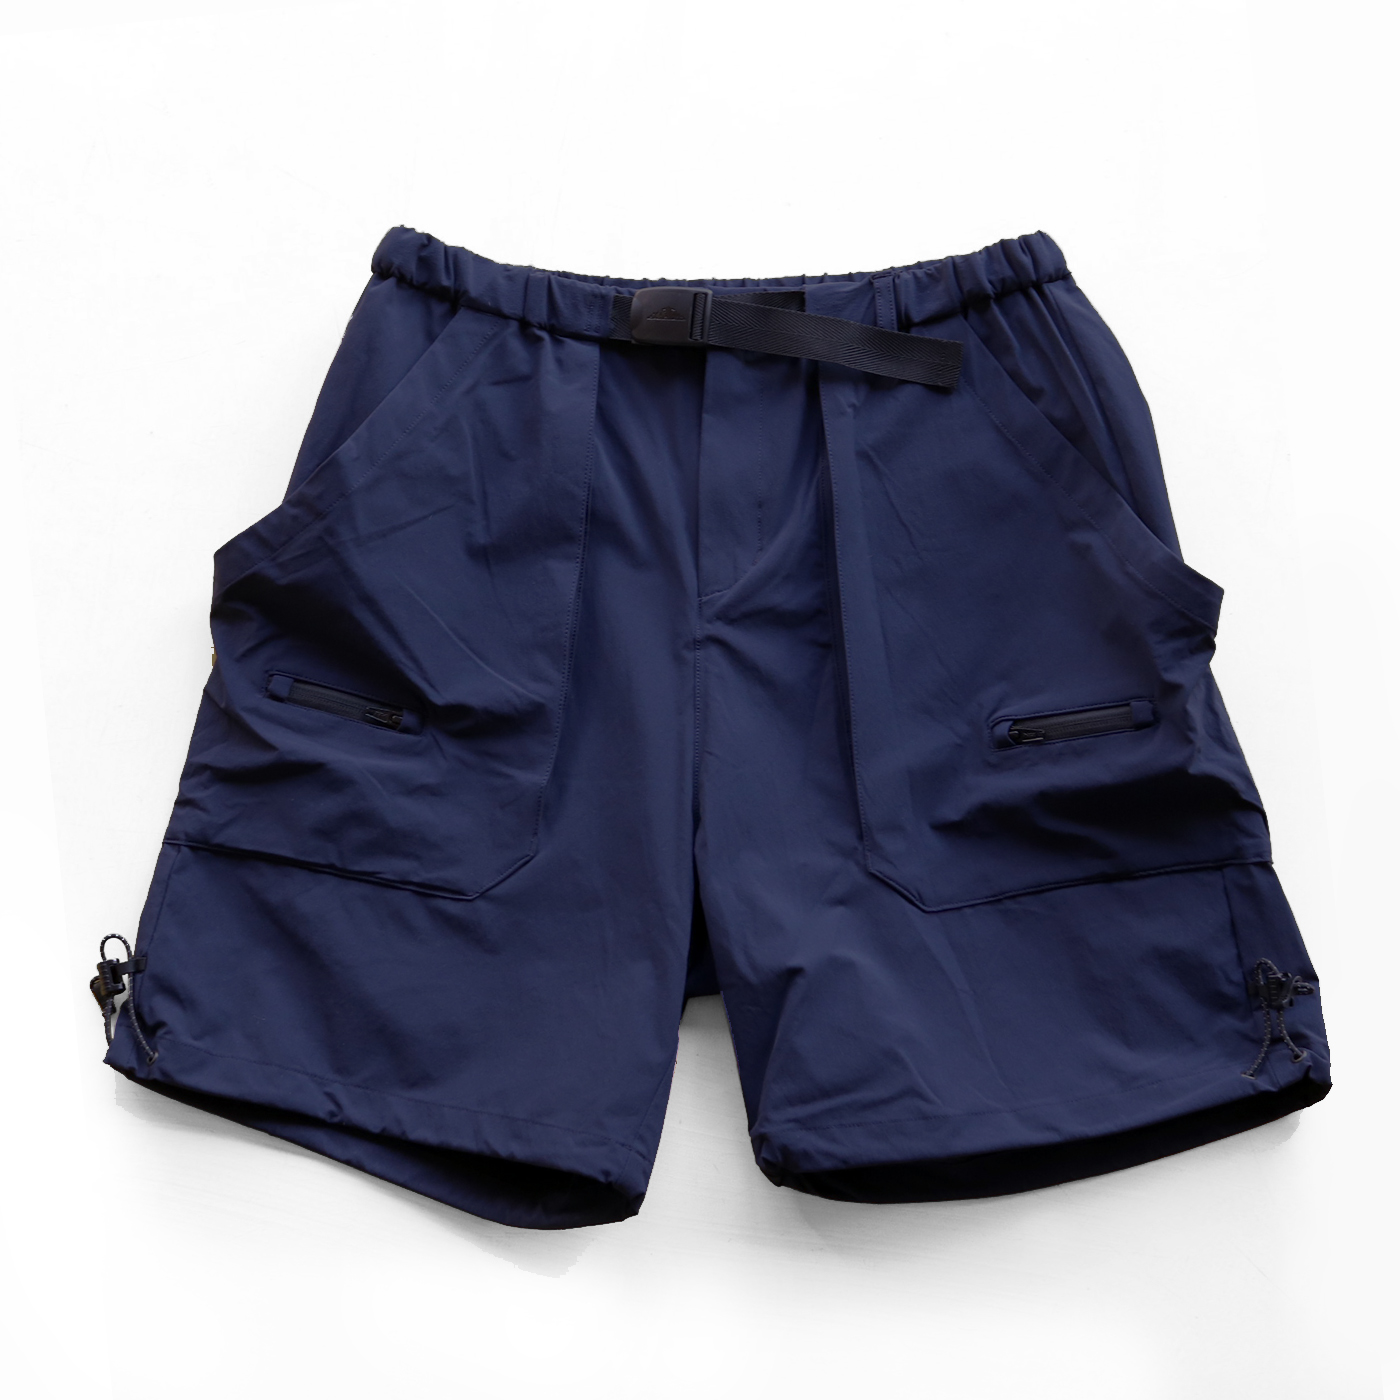 product: MS ストレッチショーツ / color: NAVY 1